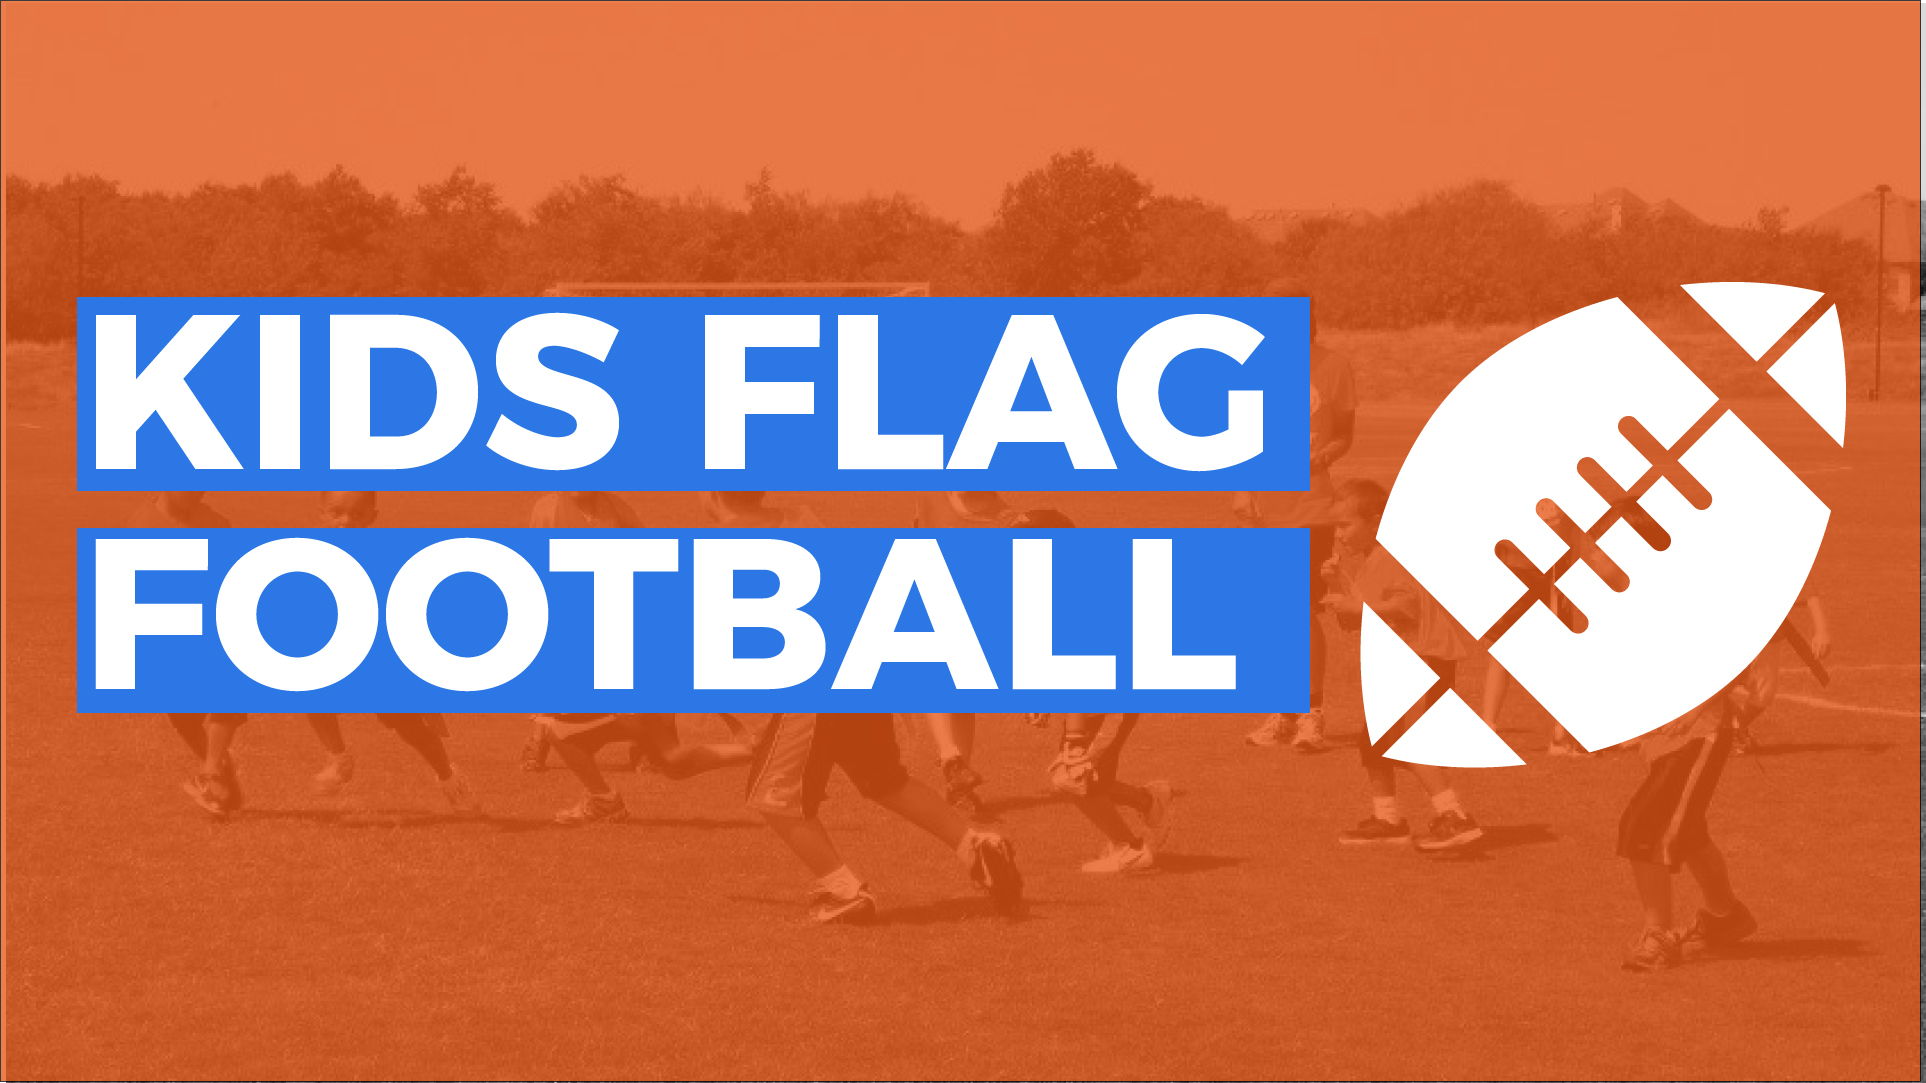 kidsflagfootball-w.jpg